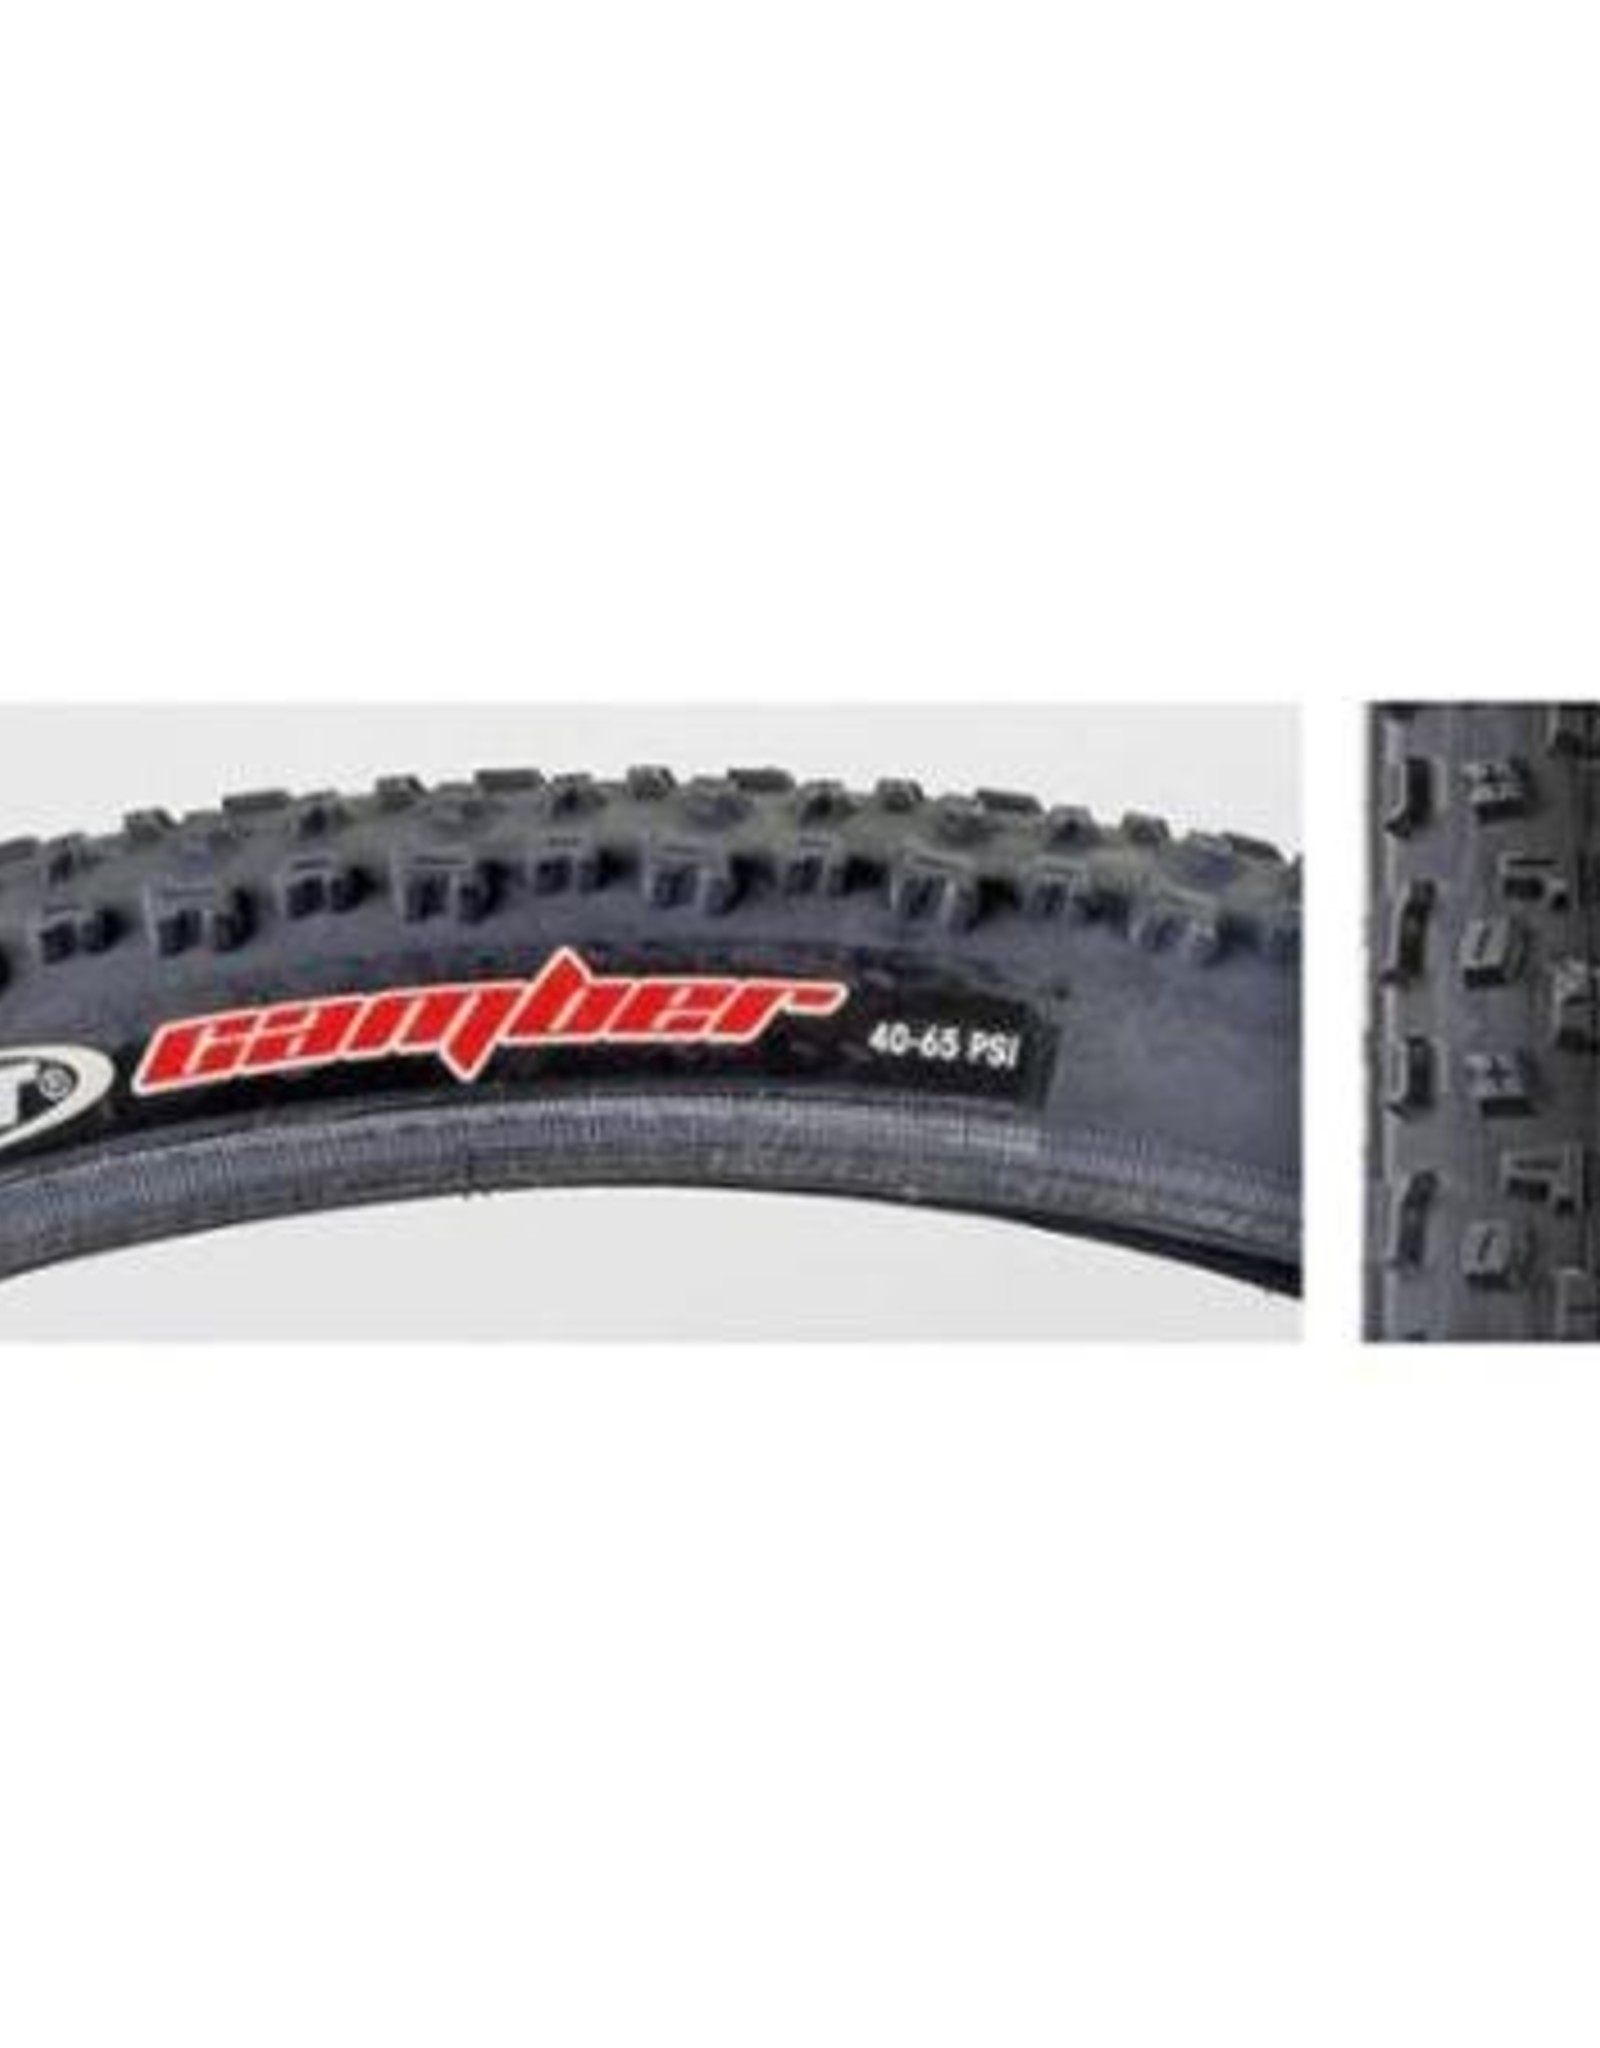 CST Camber MTB Tire: 29x2.25 Steel Bead Black